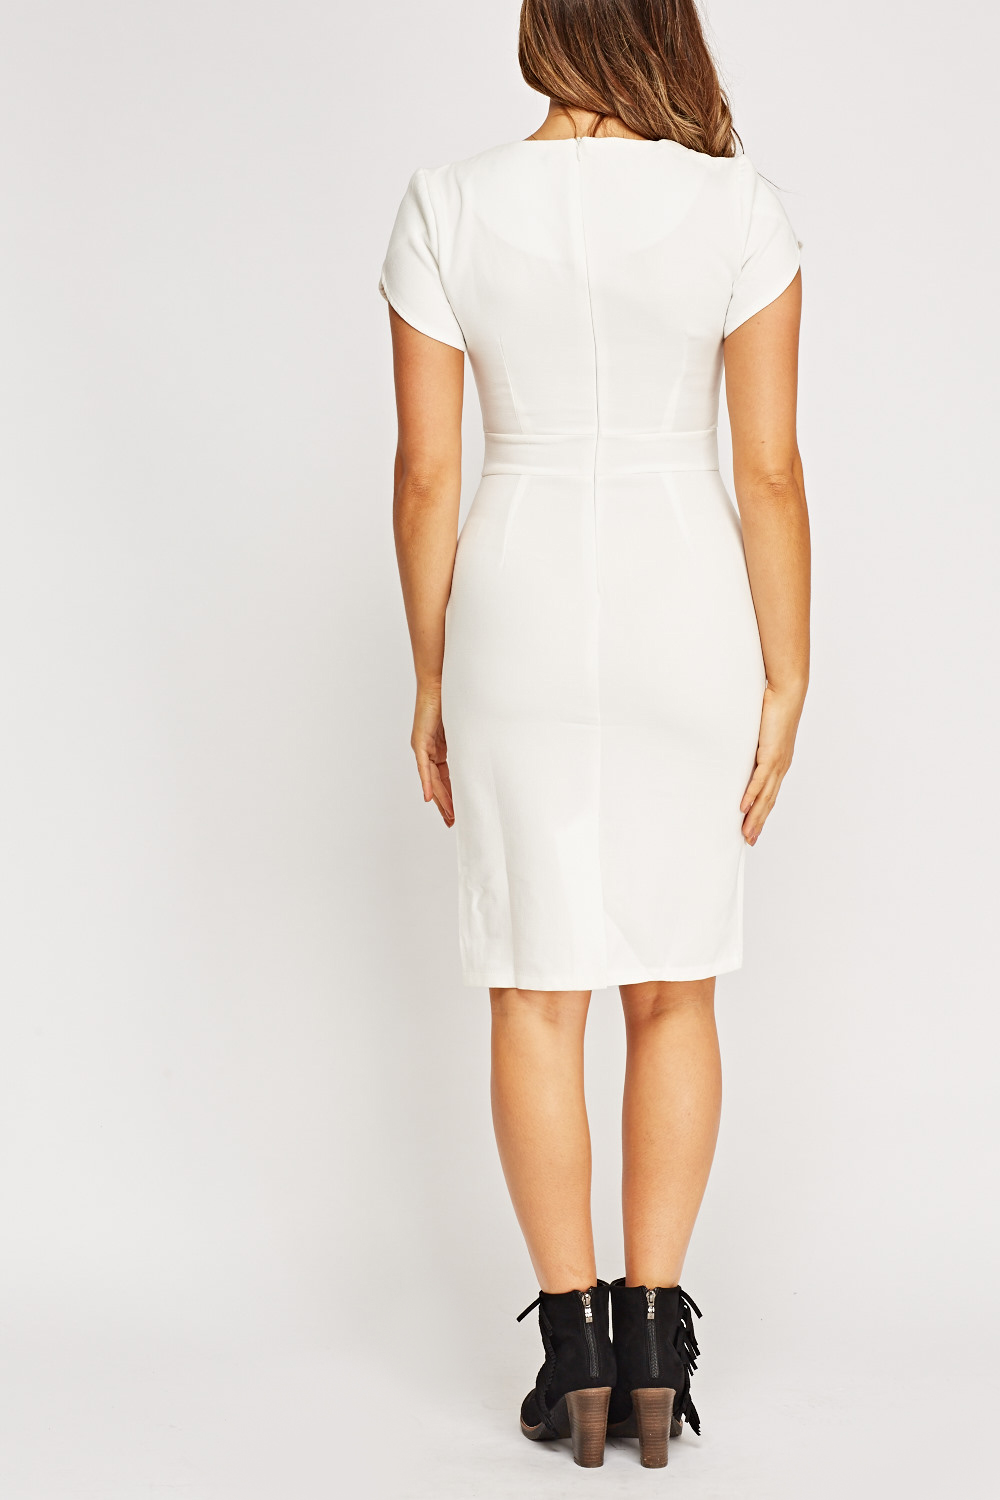 Detailed Bodice White Pencil Dress Just 163 5